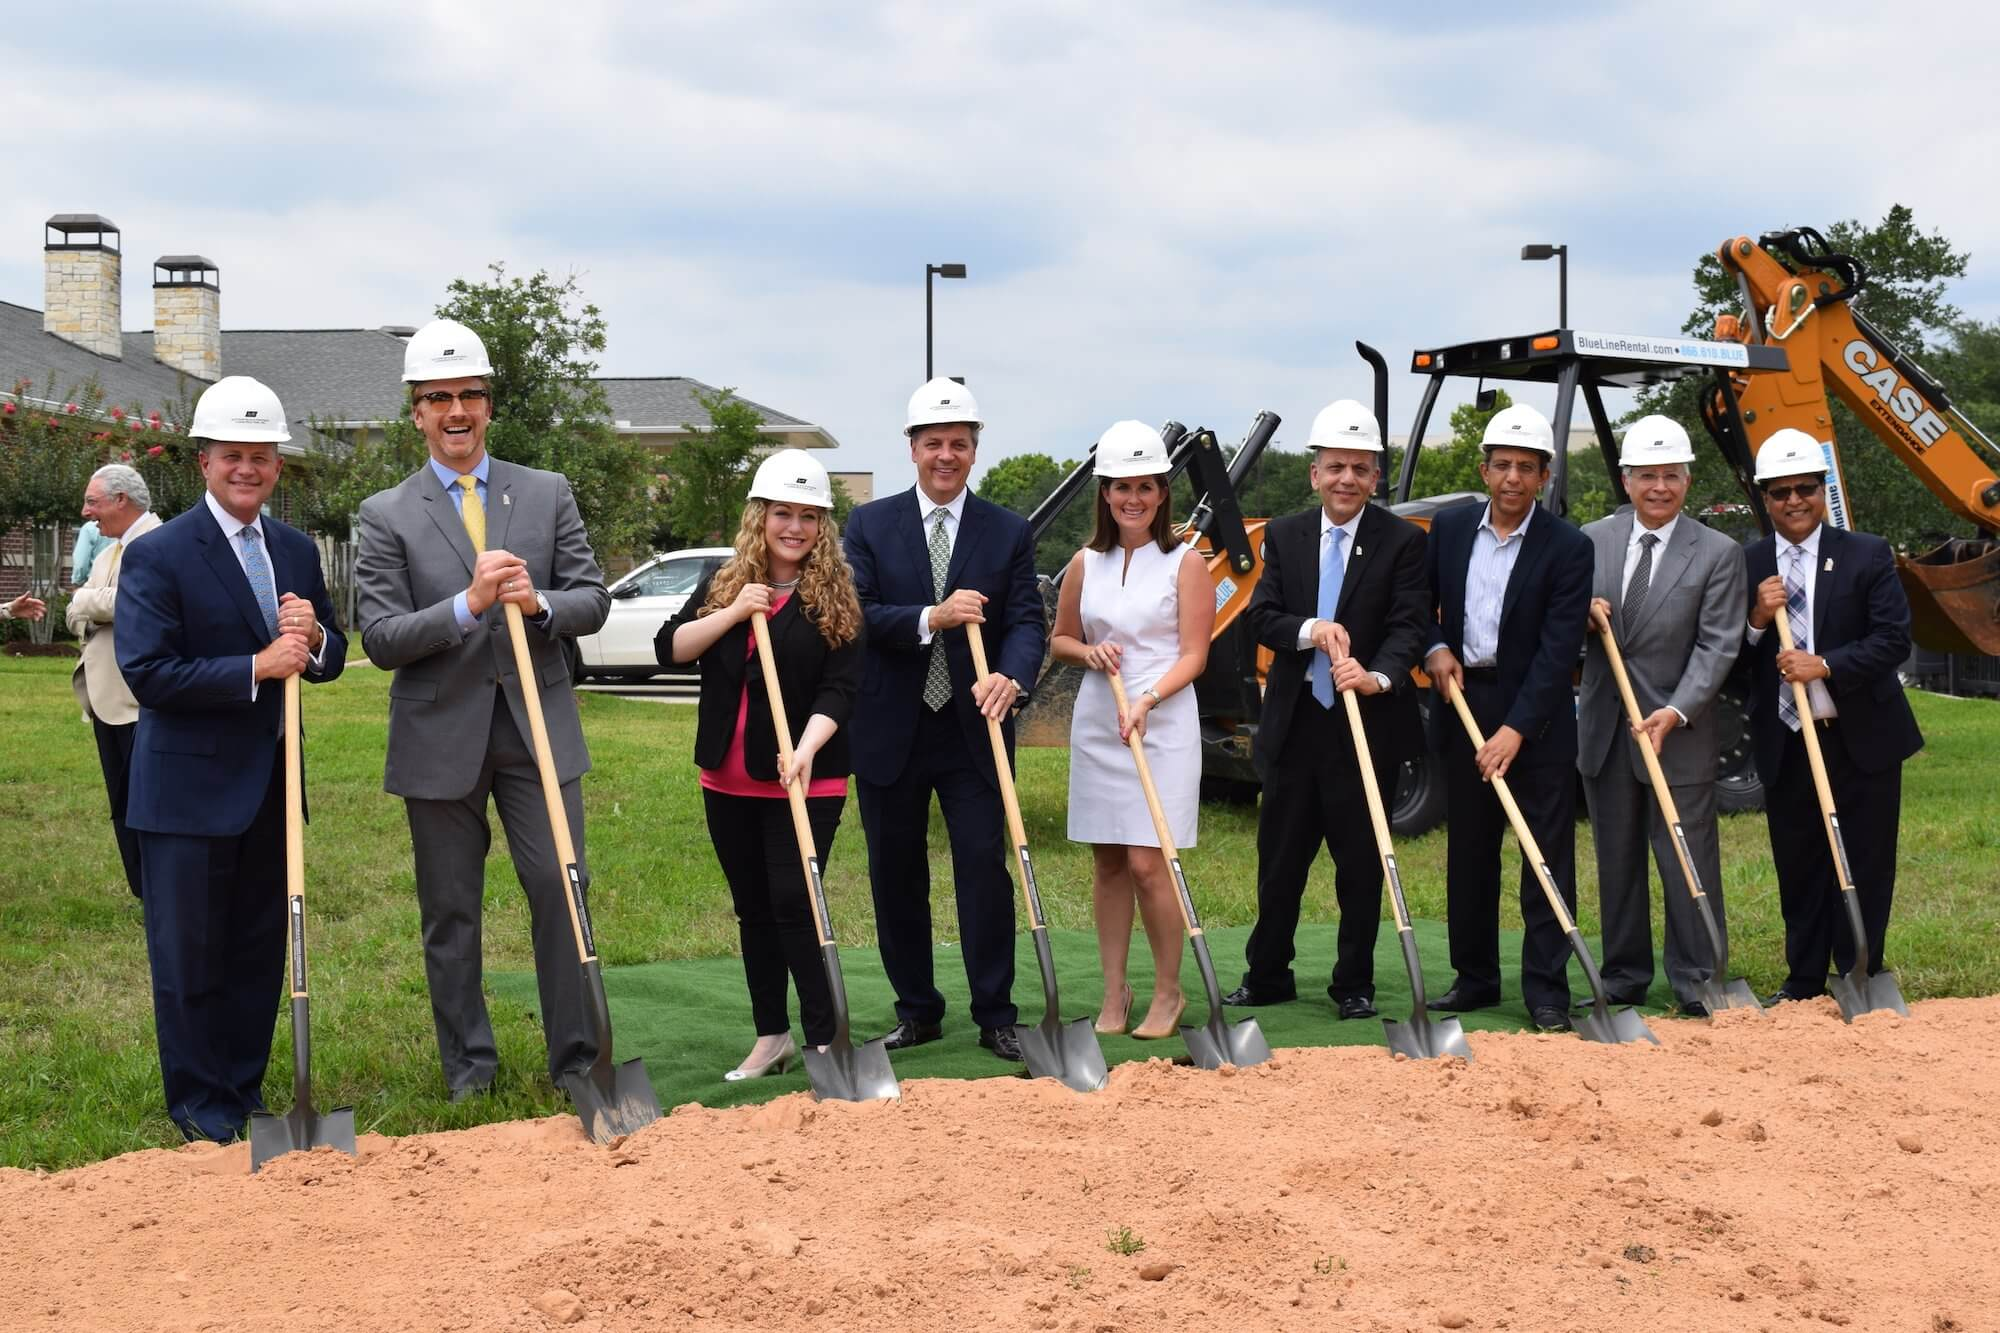 Nora's Home held a groundbreaking ceremony for its expansion on June 9.